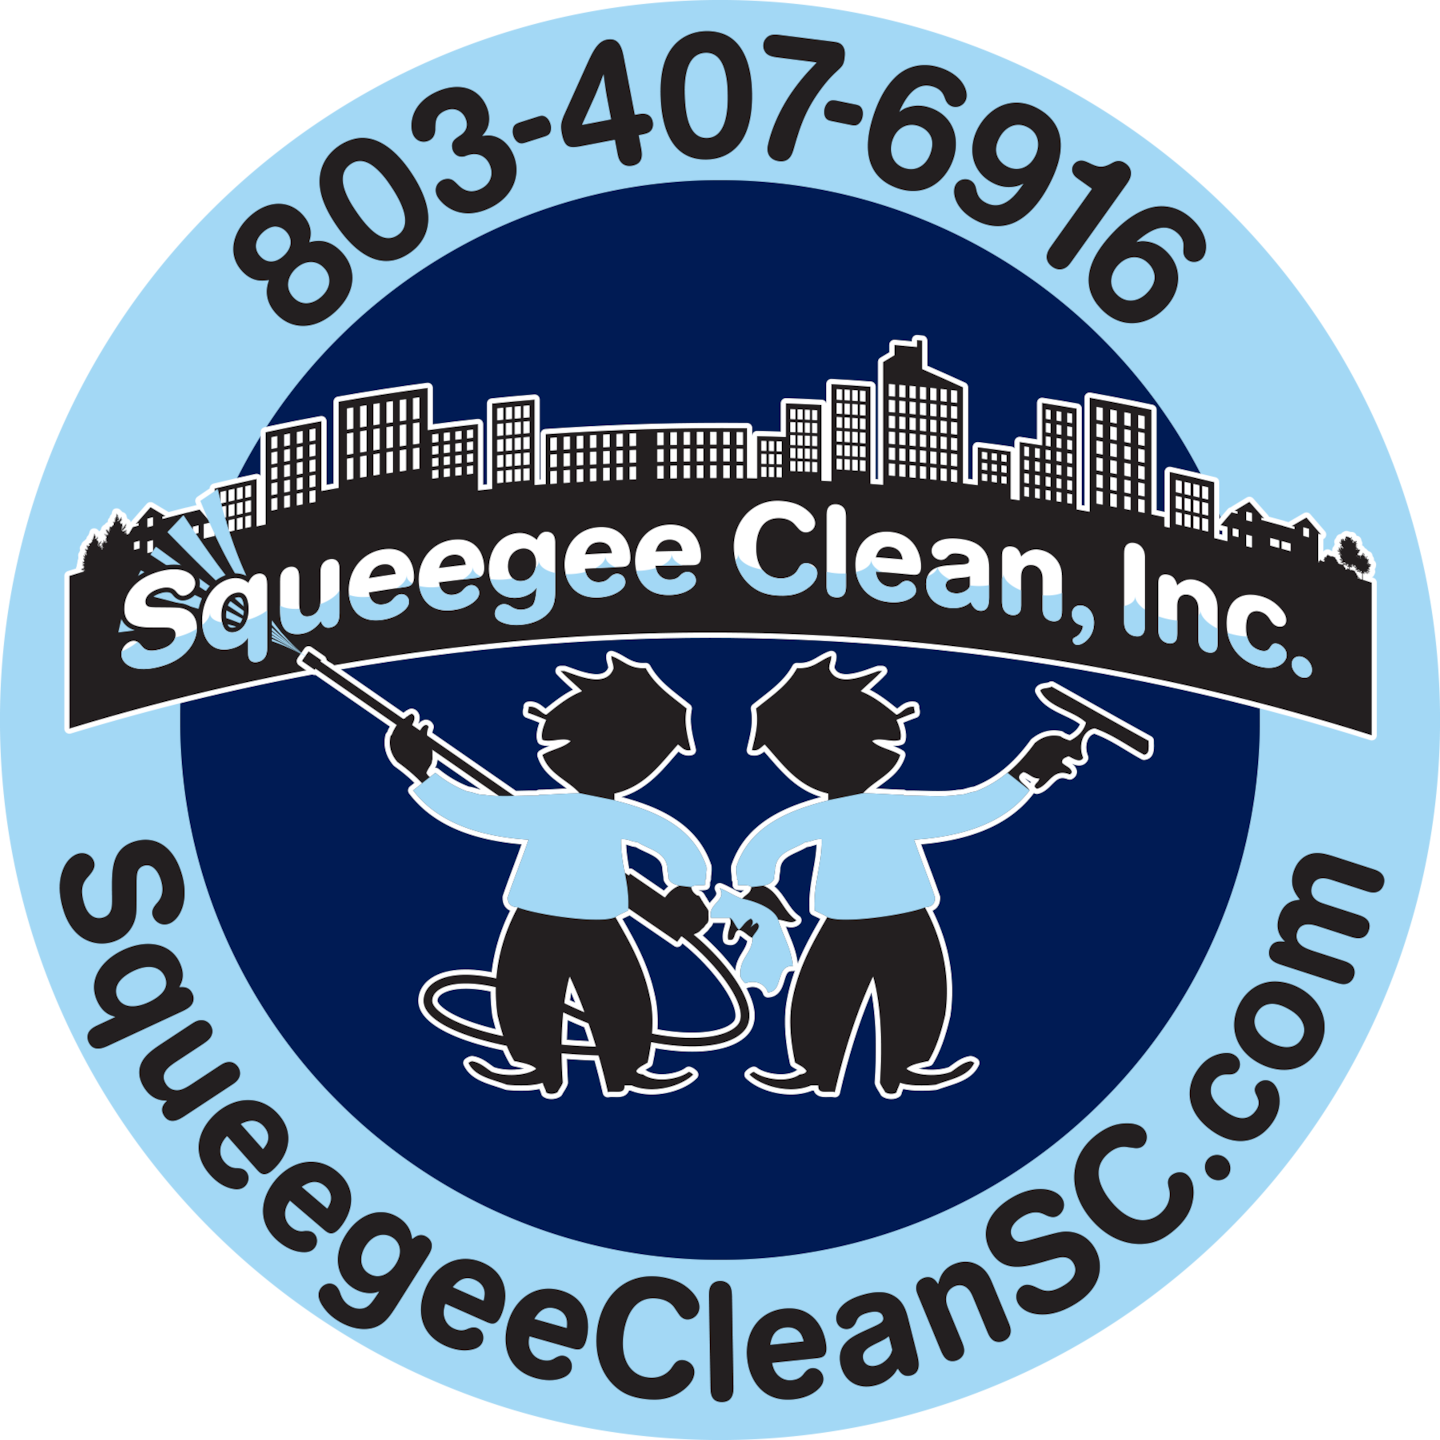 Squeegee Clean Inc.